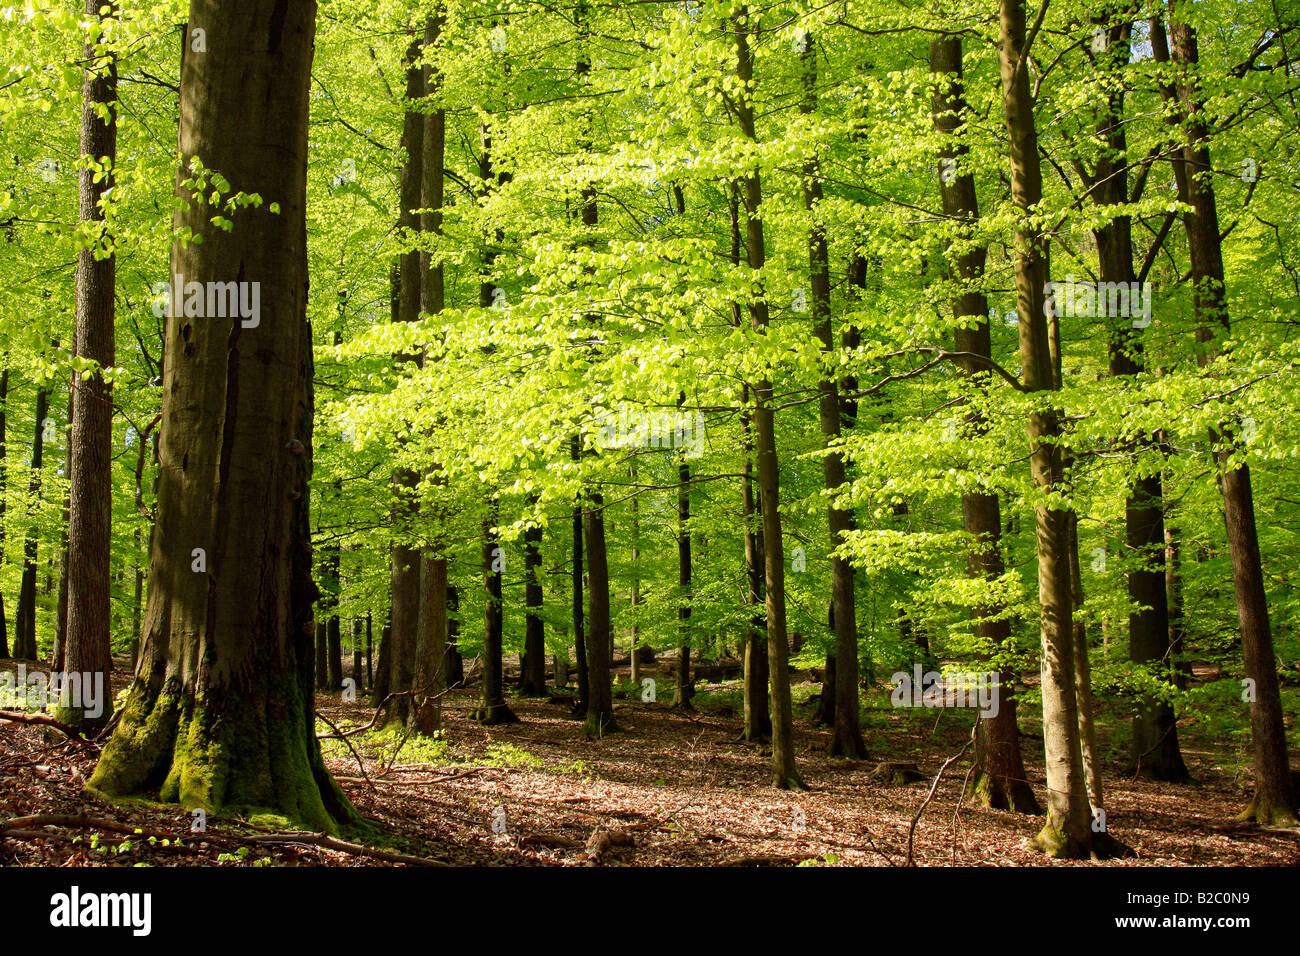 Beech forest in May, spring - Stock Image